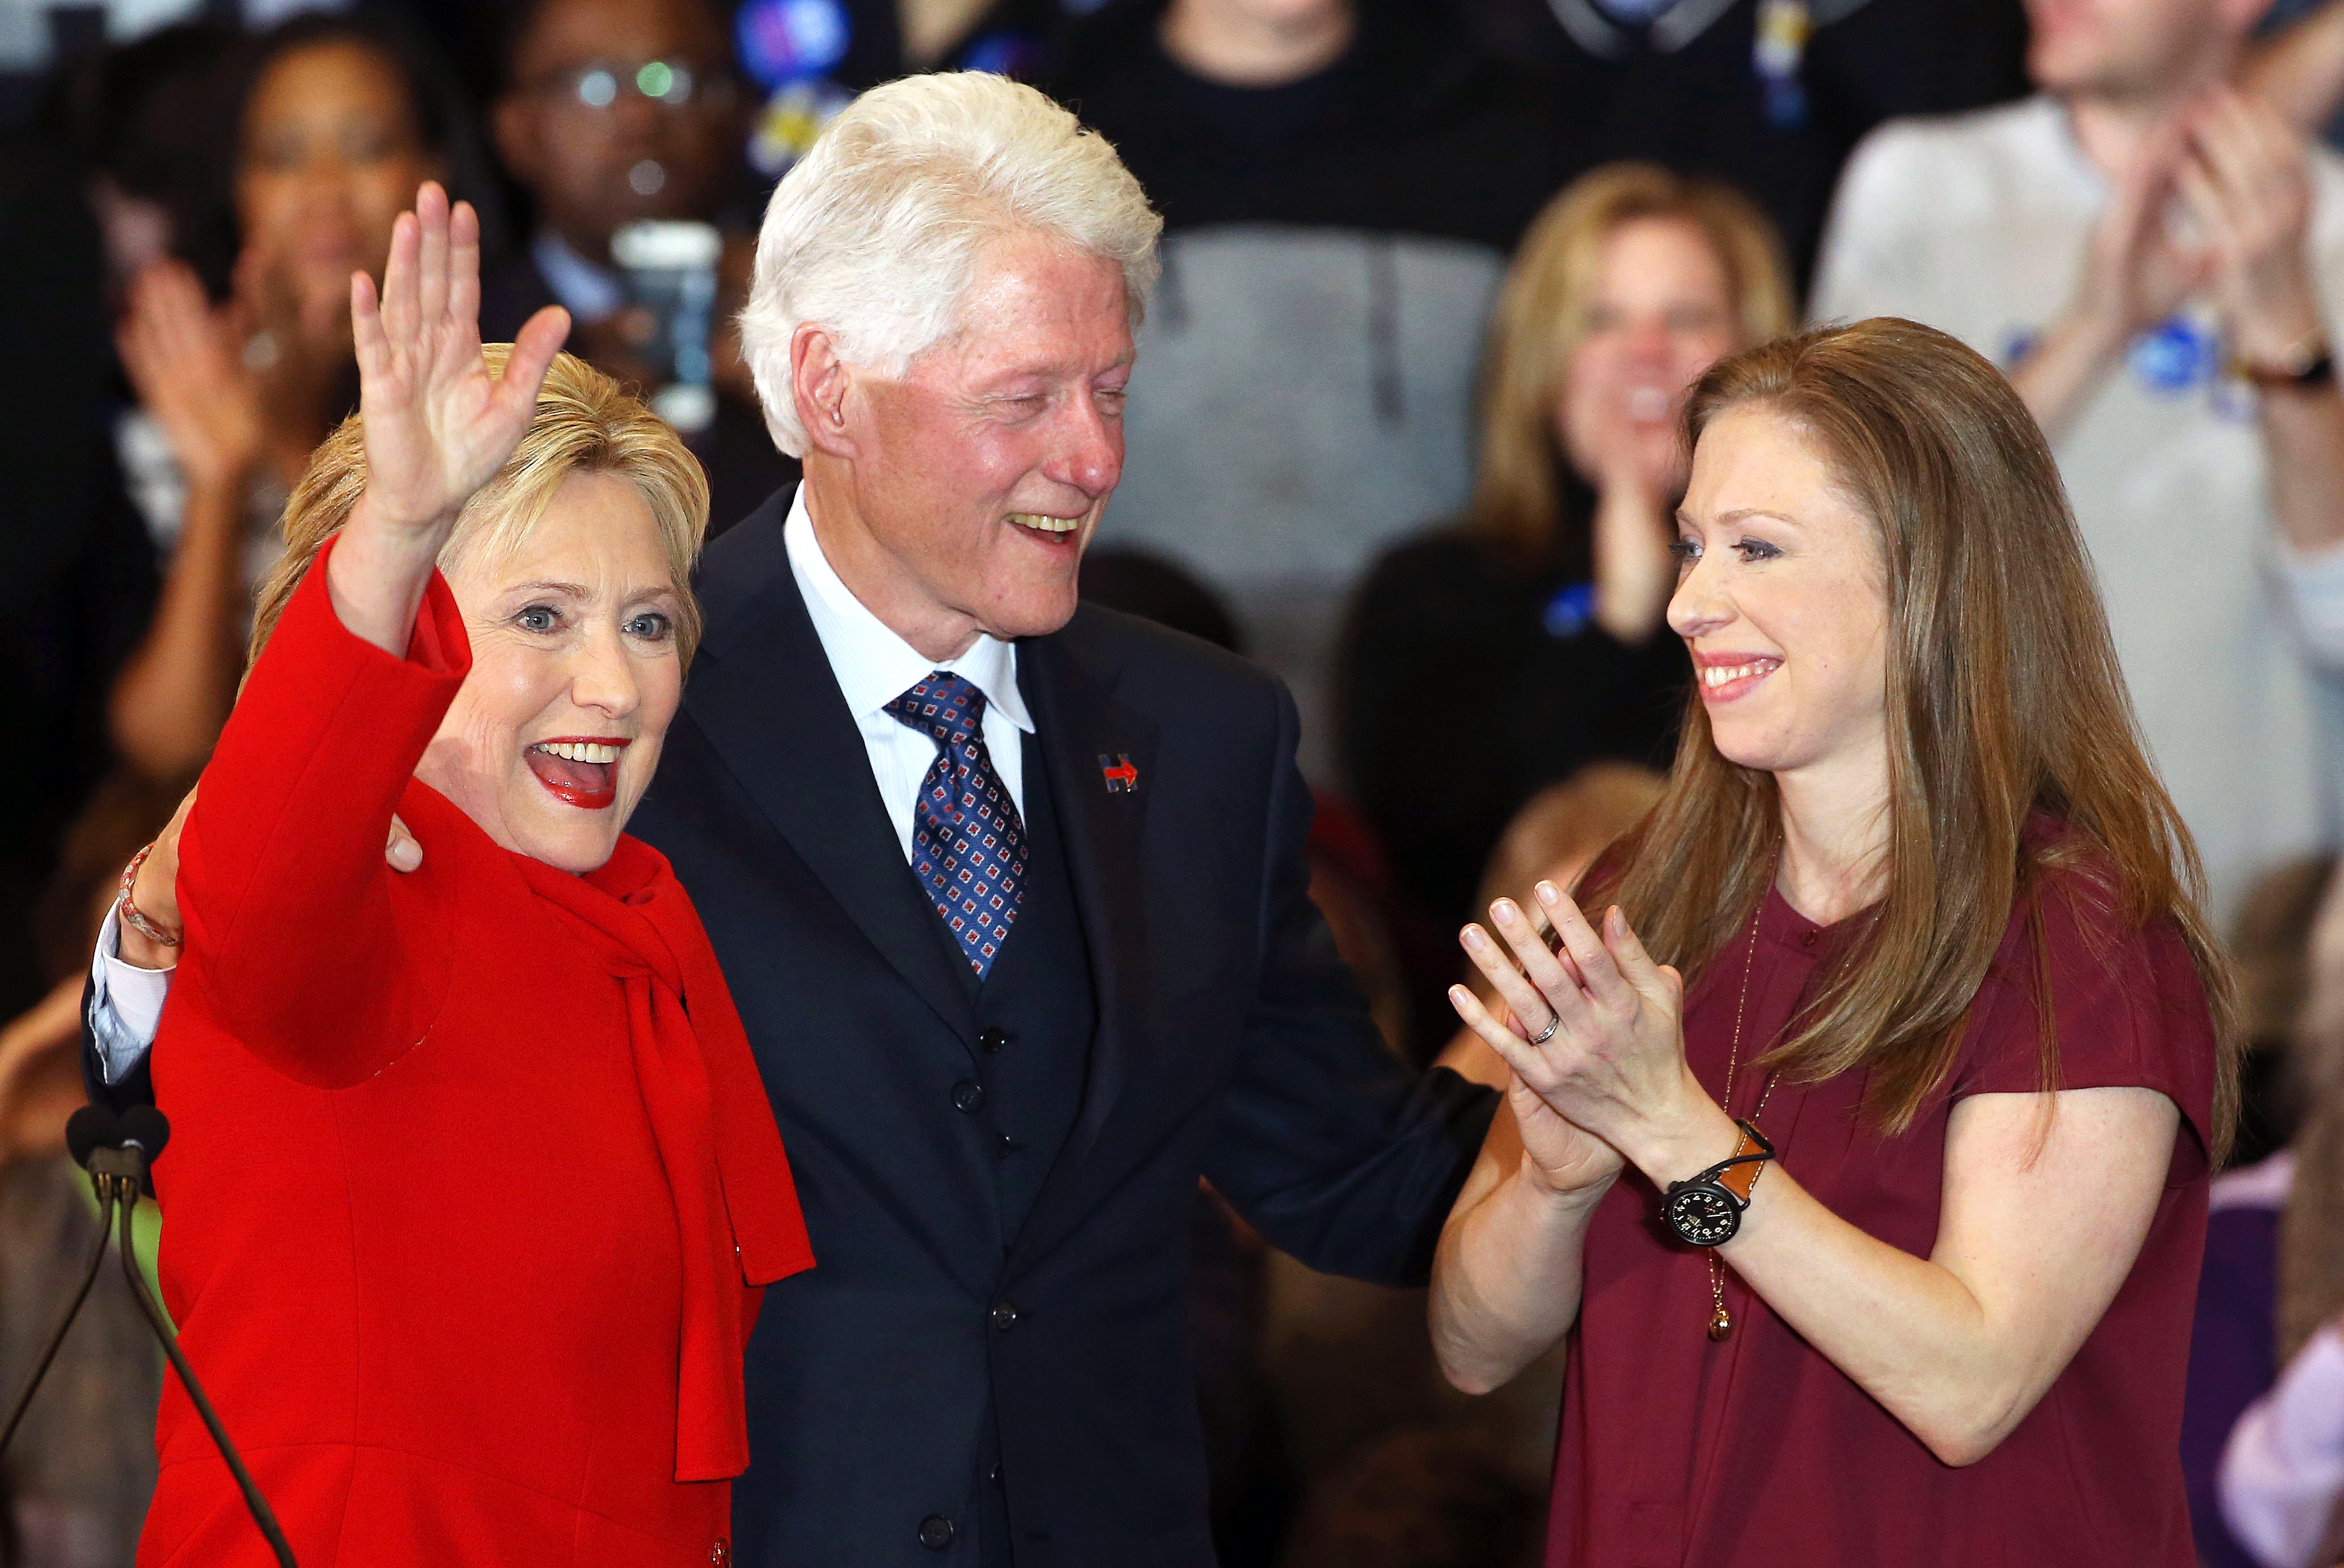 Democratic presidential candidate, former Secretary of State Hillary Clinton, waves to supporters as  husband and former President Bill Clinton and daughter Chelsea Clinton cheer at her caucus night event on Feb. 1, 2016 in Des Moines, Iowa.